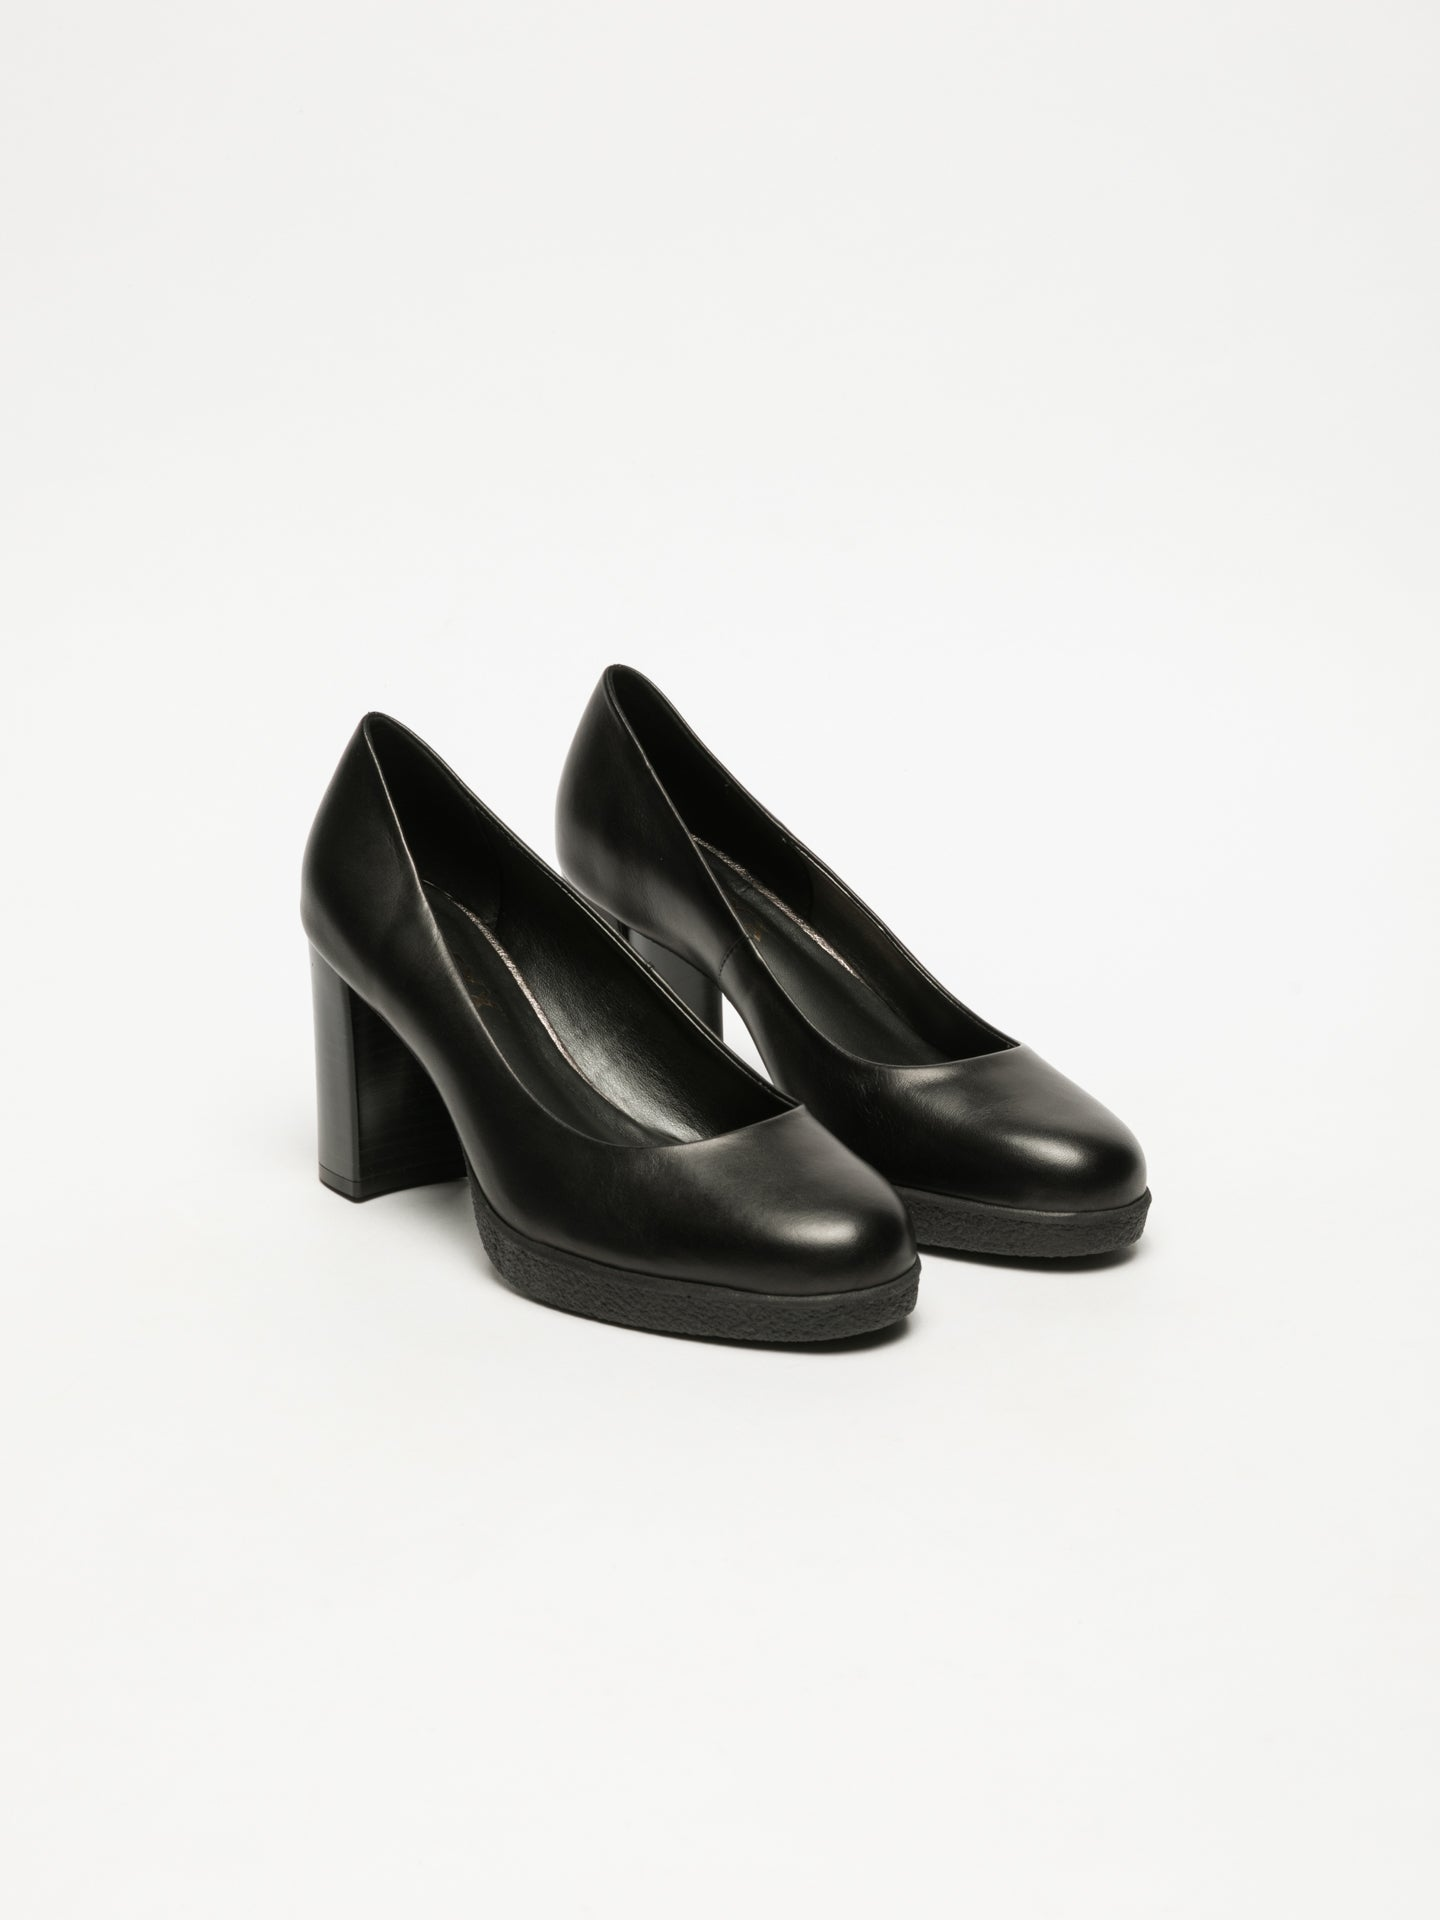 The Flexx Black Block Heel Shoes